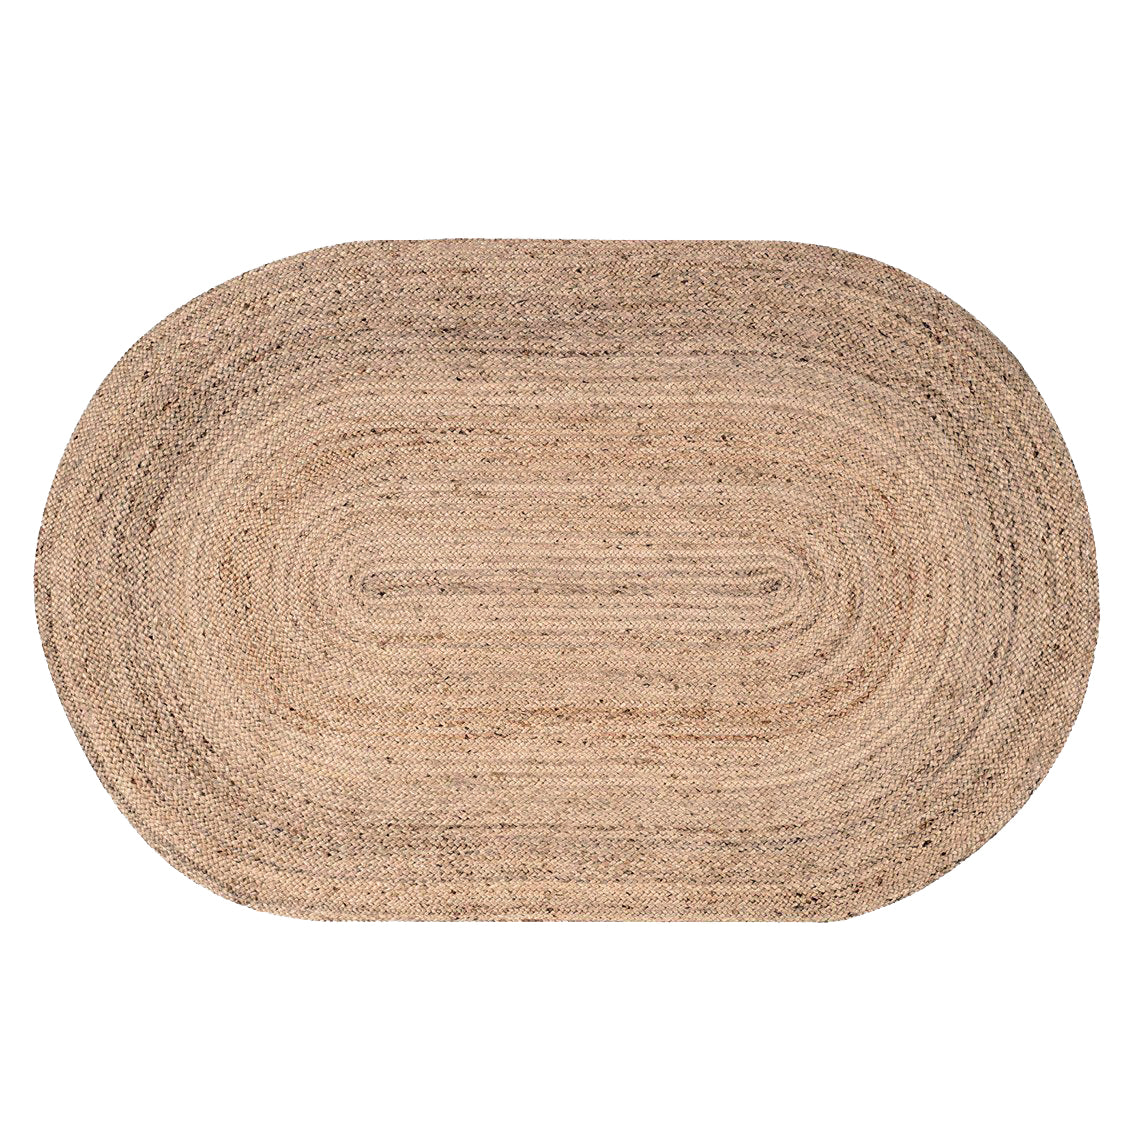 Oval Natural Jute Rug 120 x 180 cm